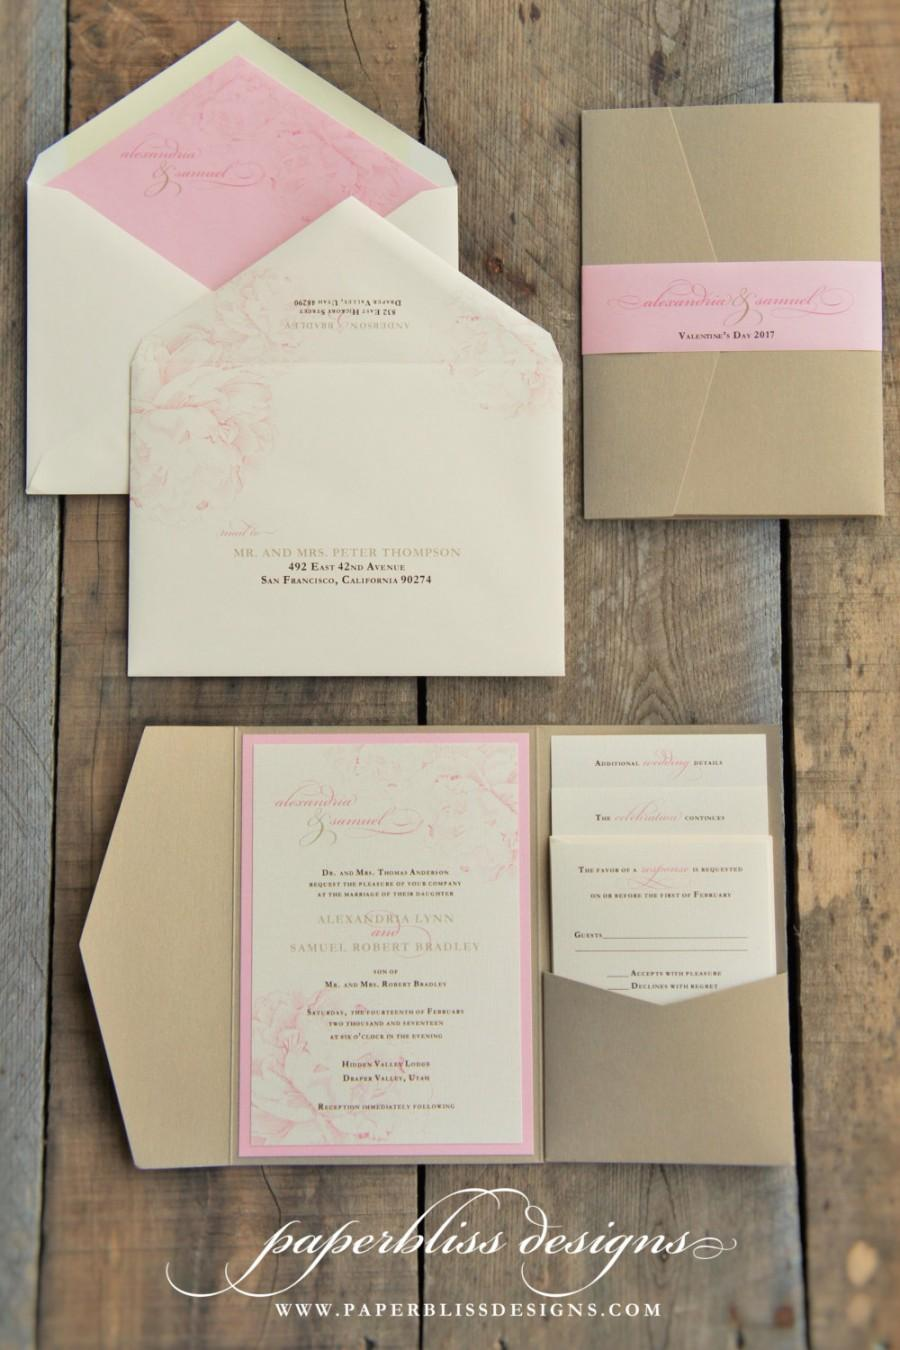 folding wedding invitations with pockets | Wedding